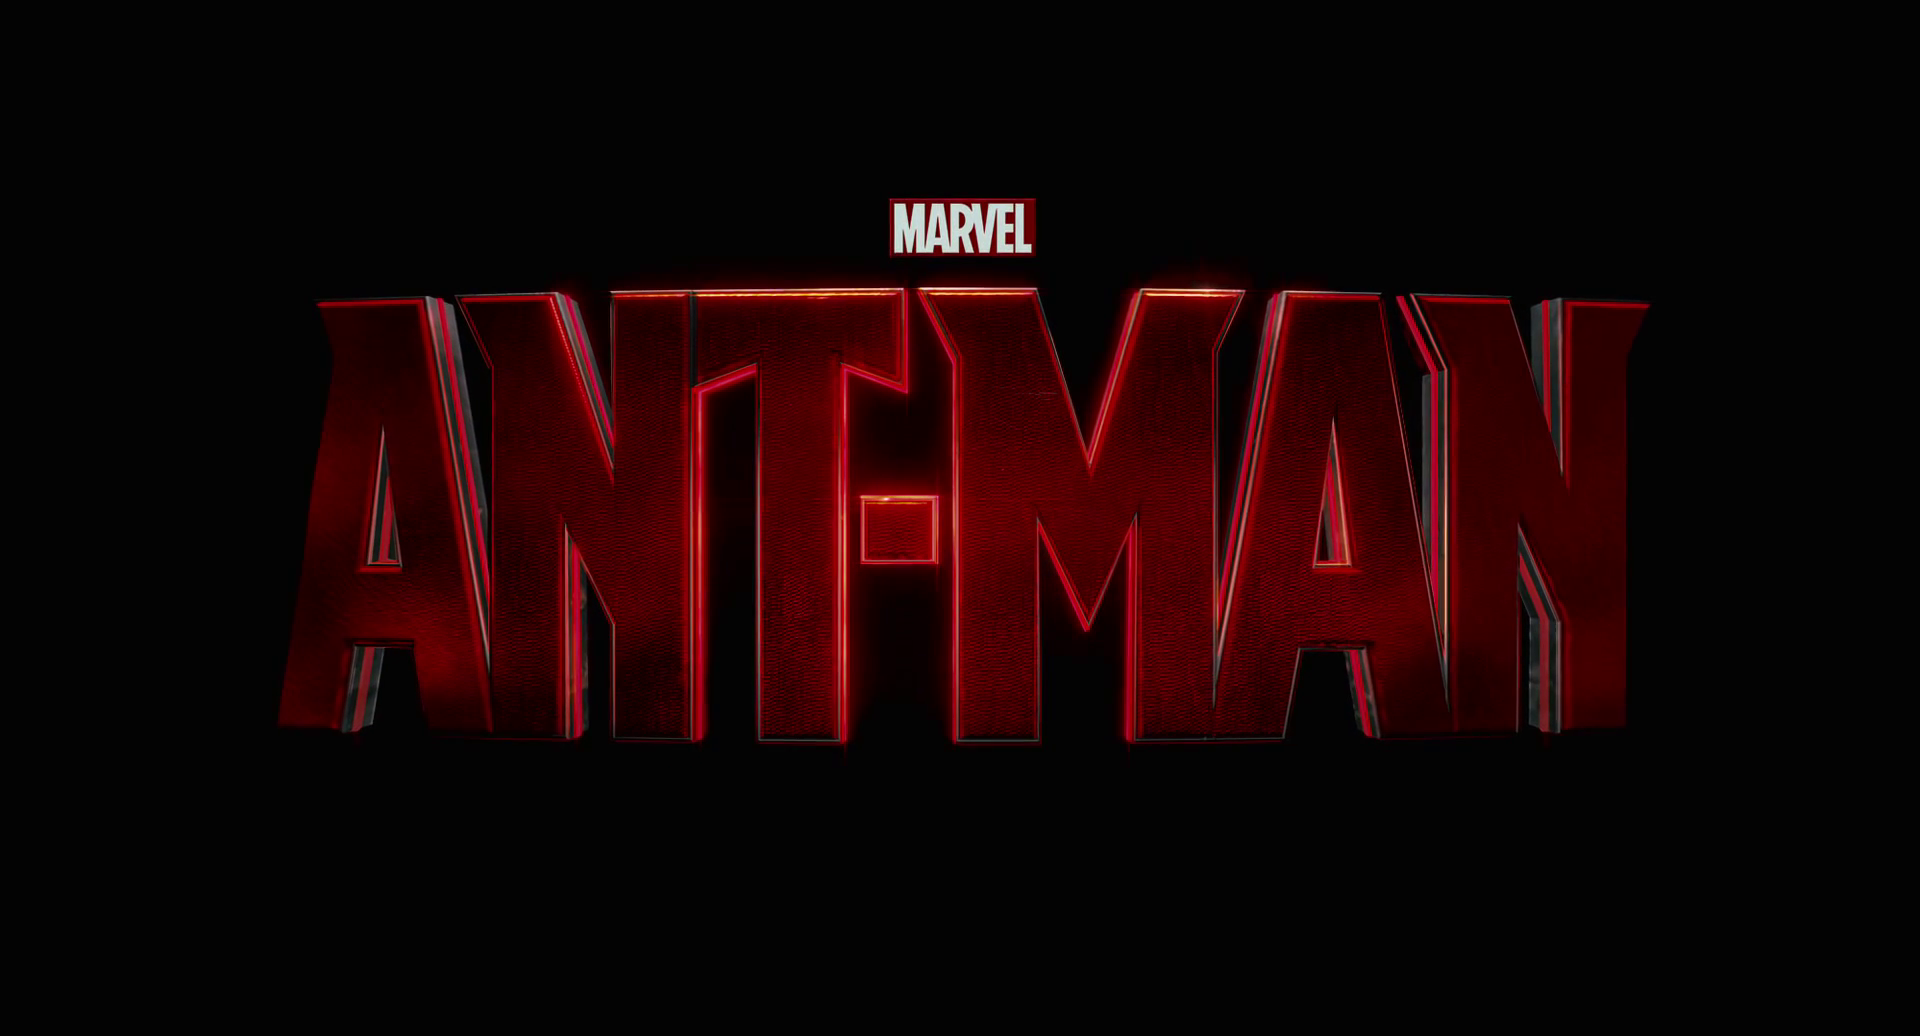 Ant-Man-Official PHOTO-07DEZEMBRO2014-36